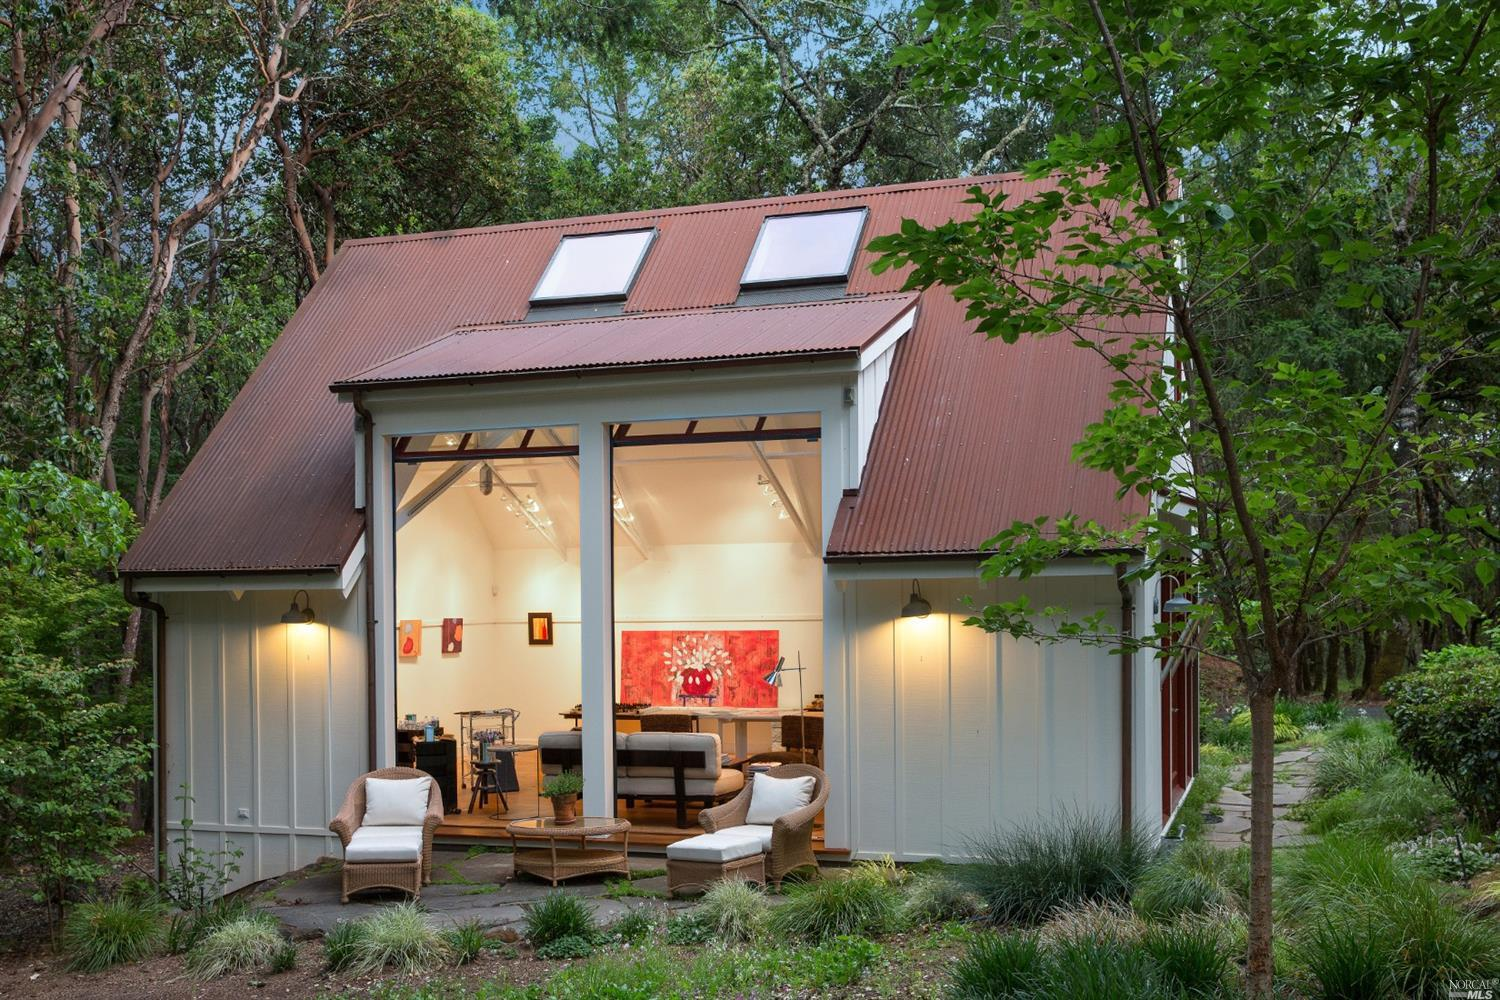 Robert Redford's house for sale in St. Helene includes this serene art studio that has one bedroom and one bath.